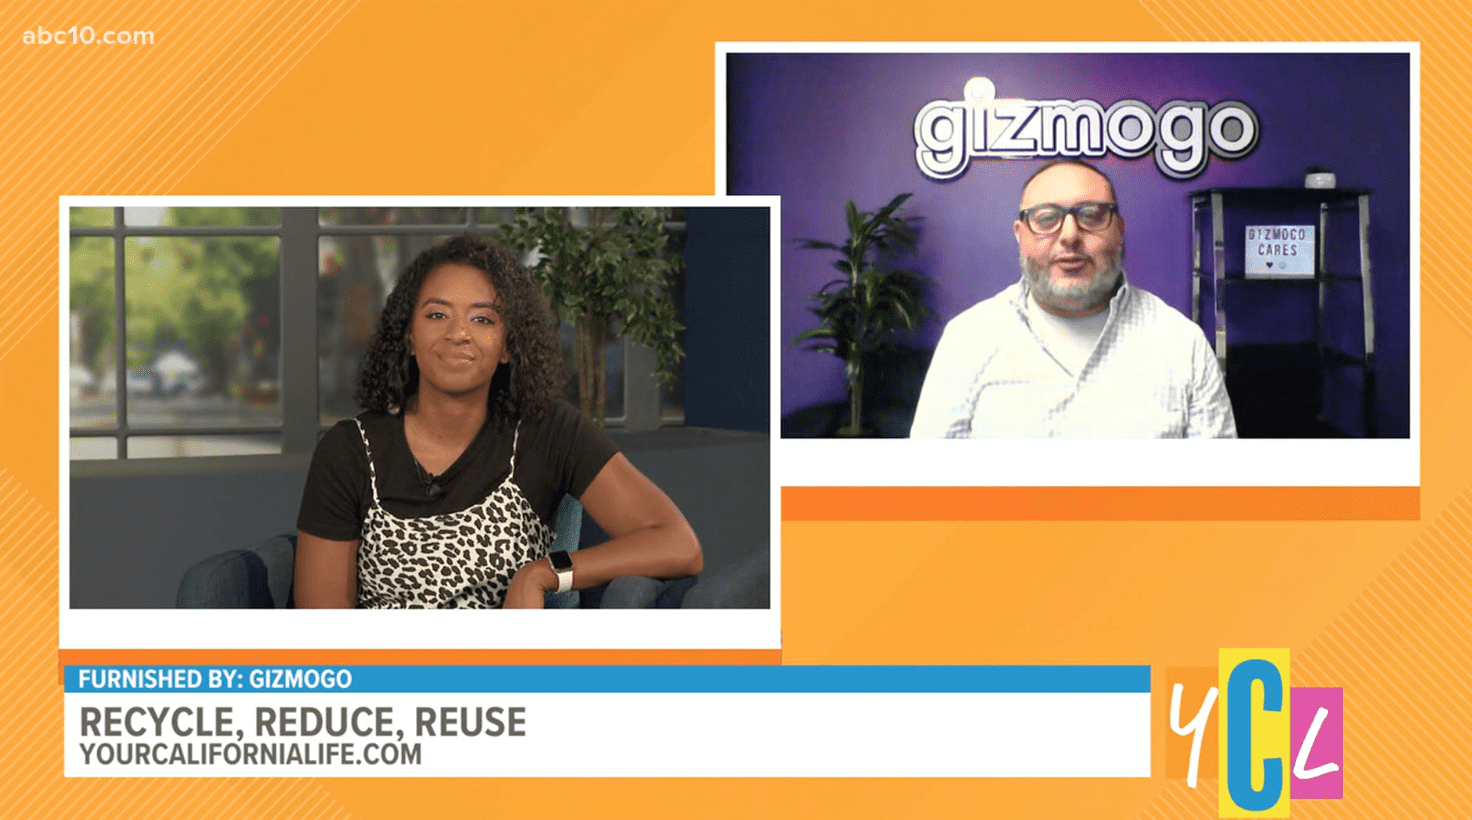 ABC 10 Chats with Gizmogo CIO Steven Vasquez on Tips to Reduce, Reuse and Recycle Used Electronics